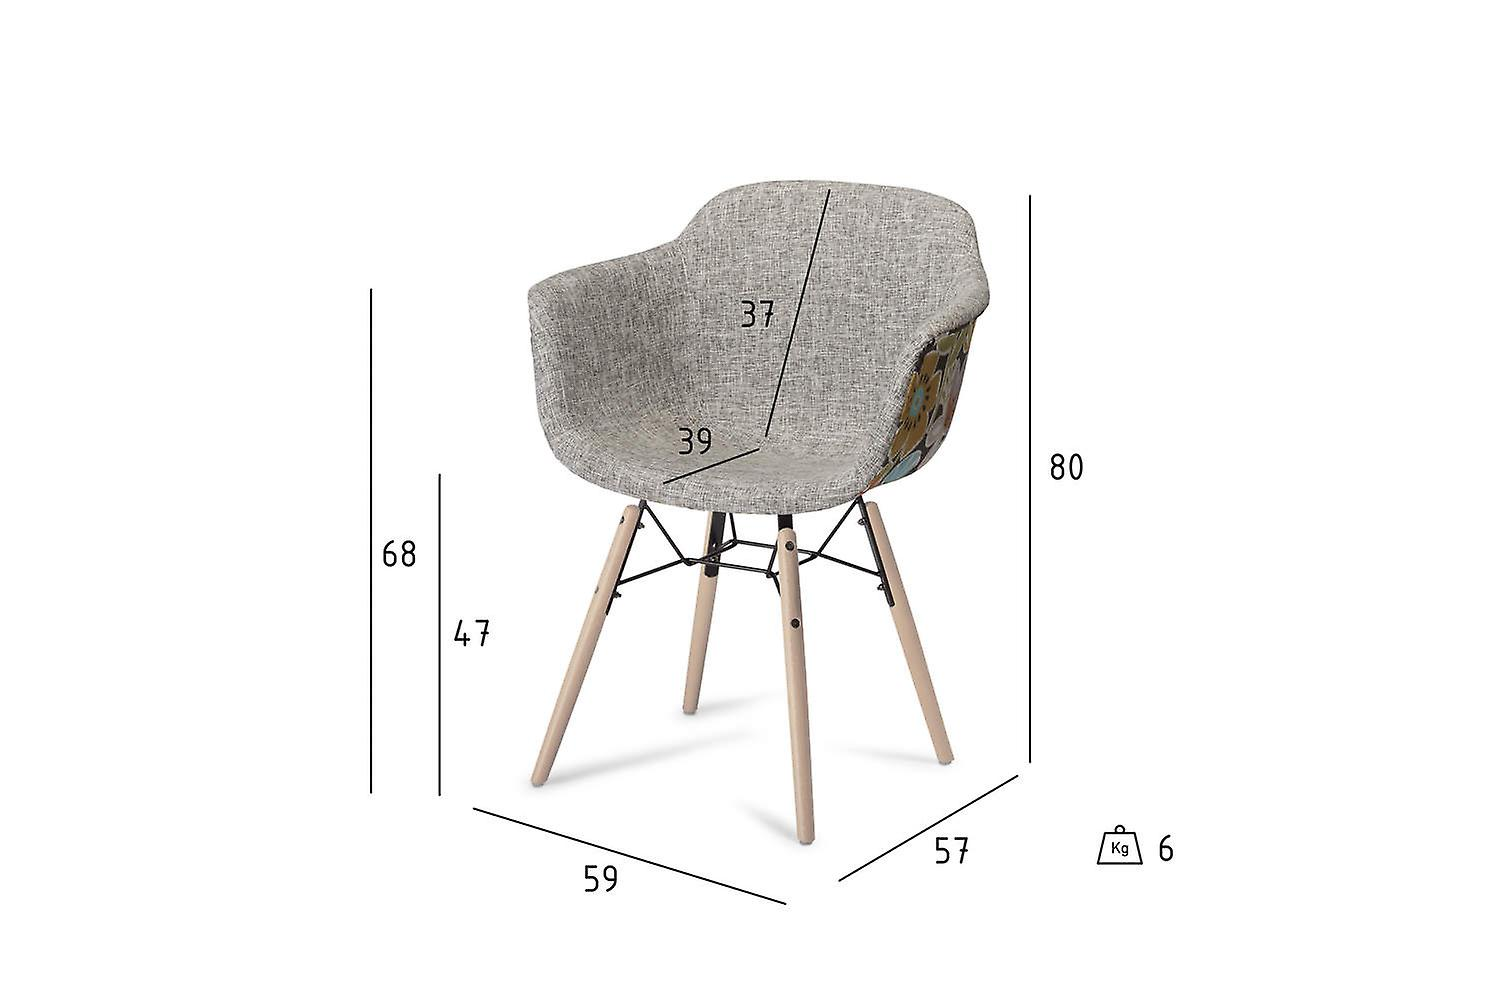 Furnhouse Flame Dining Chair, Red/Grey, Natural Legs, 59x57x80 cm, Set of 2